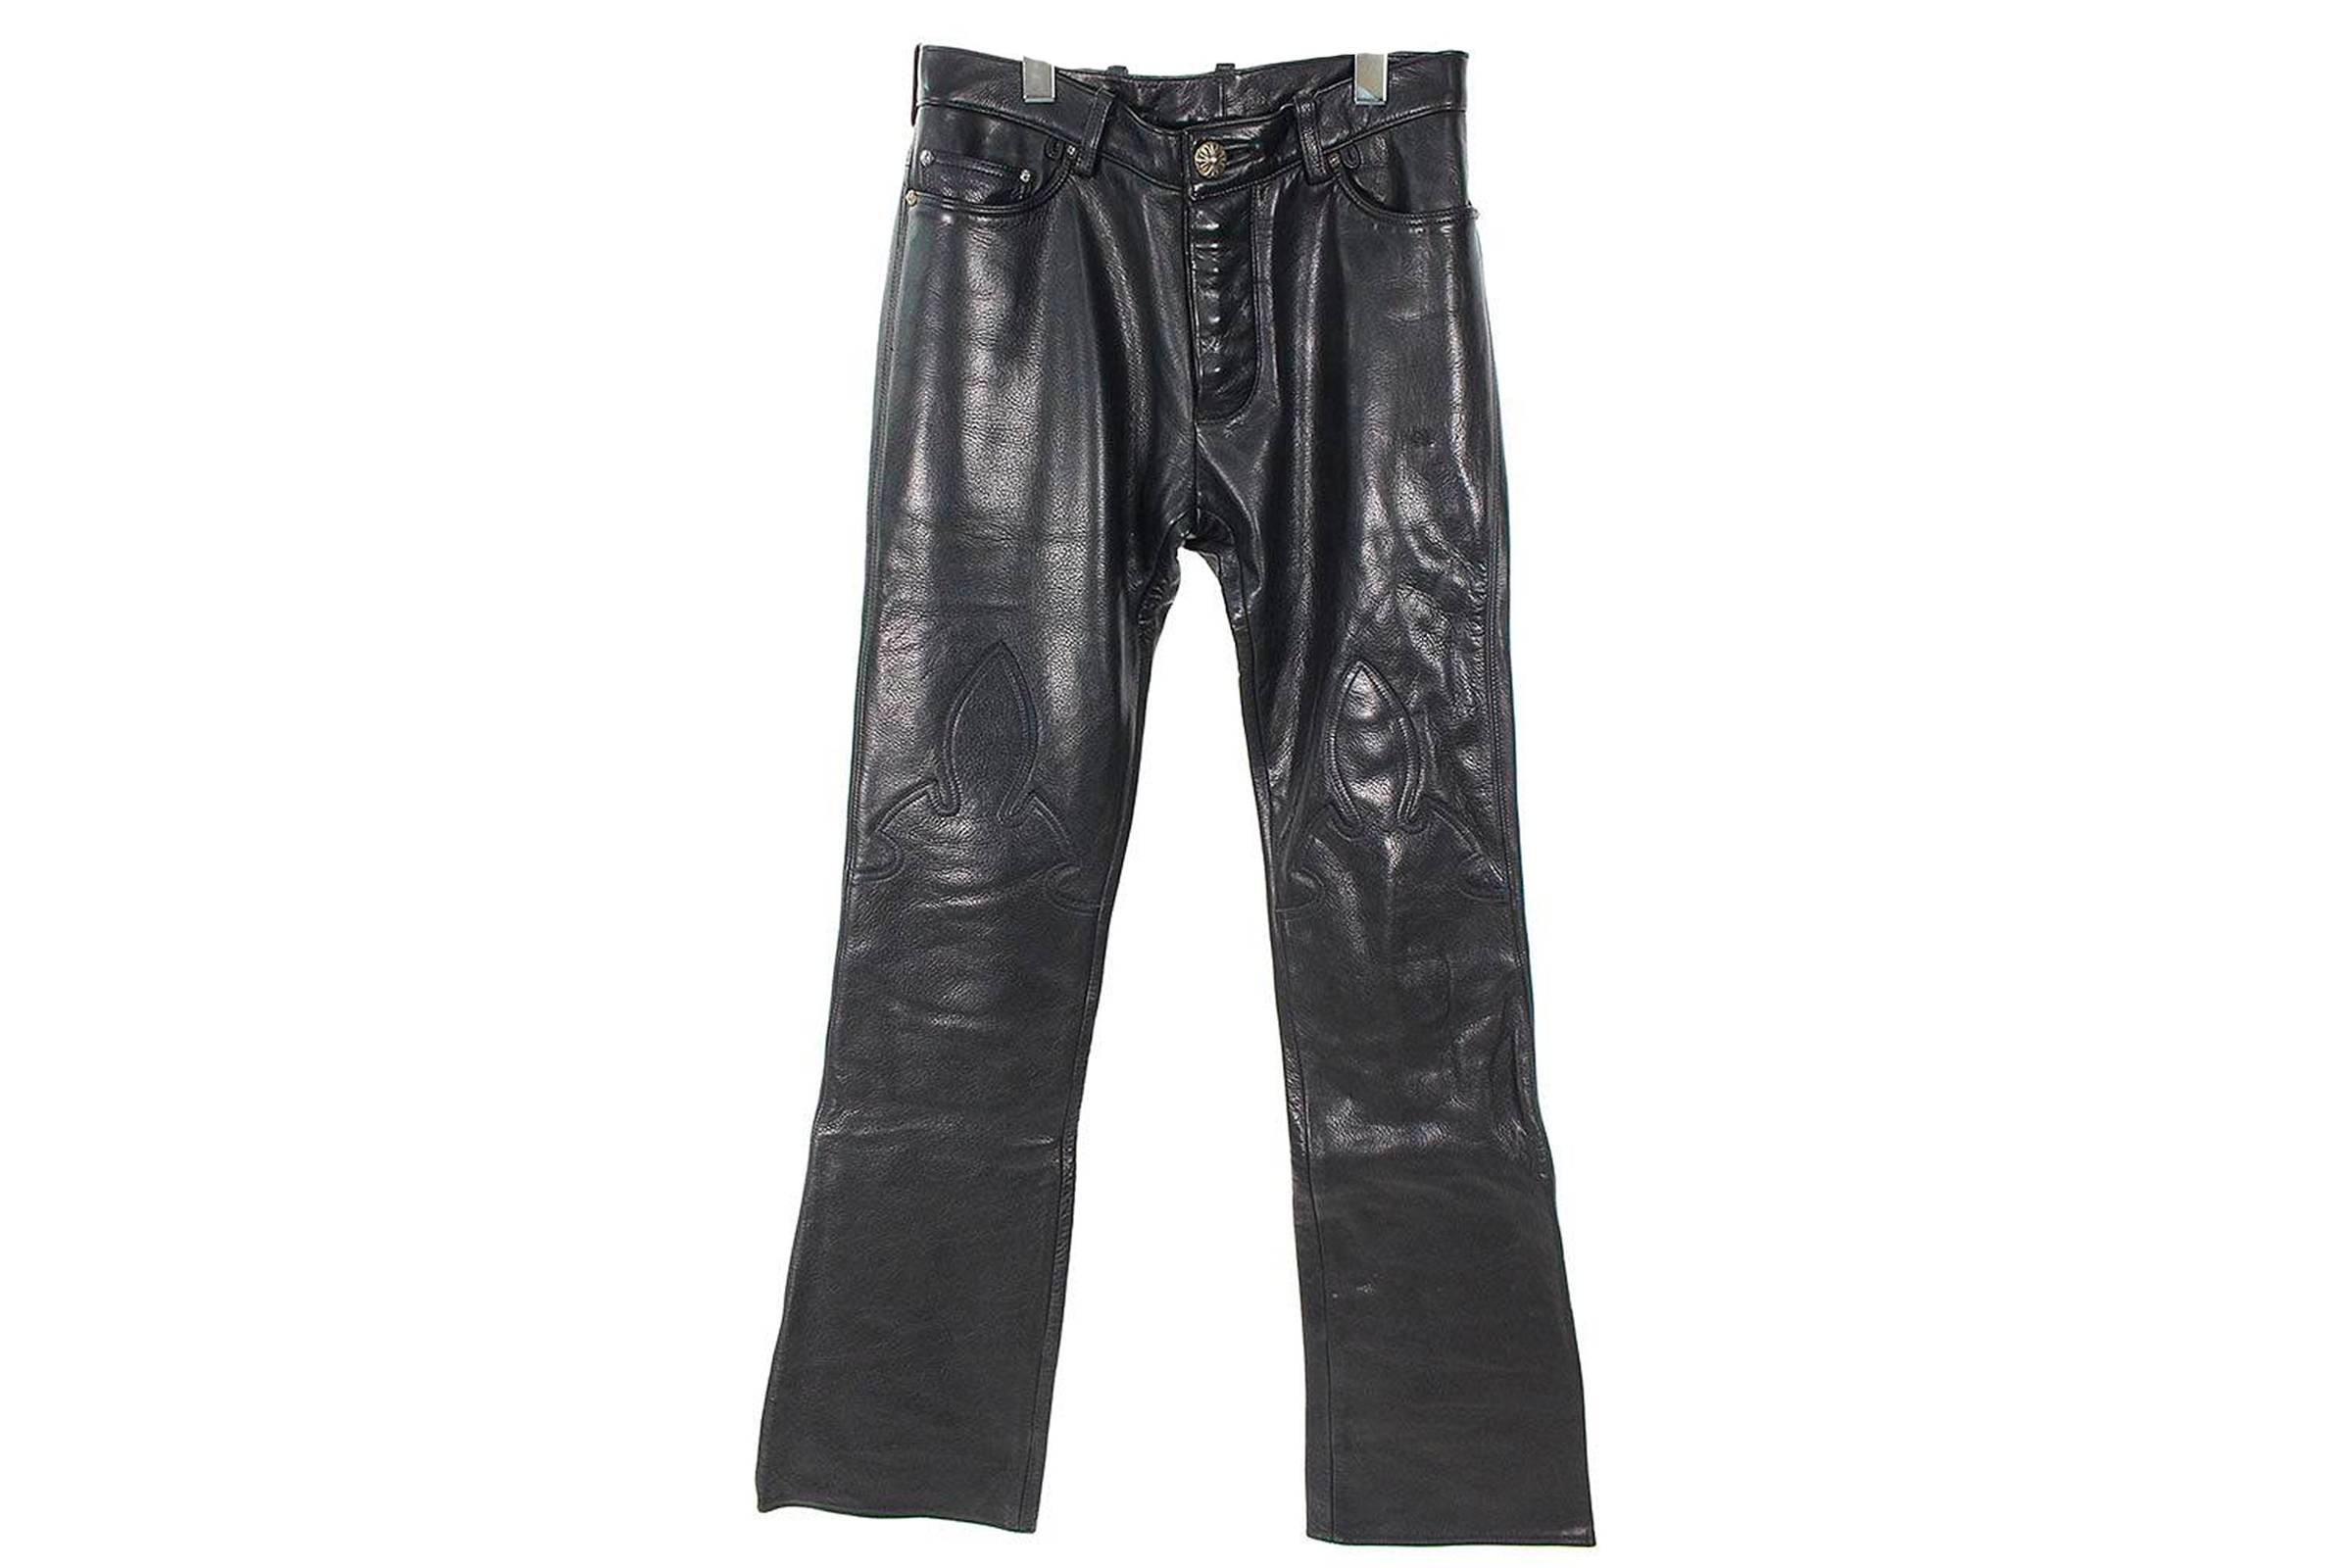 Chrome Hearts Leather Motorcycle Jeans